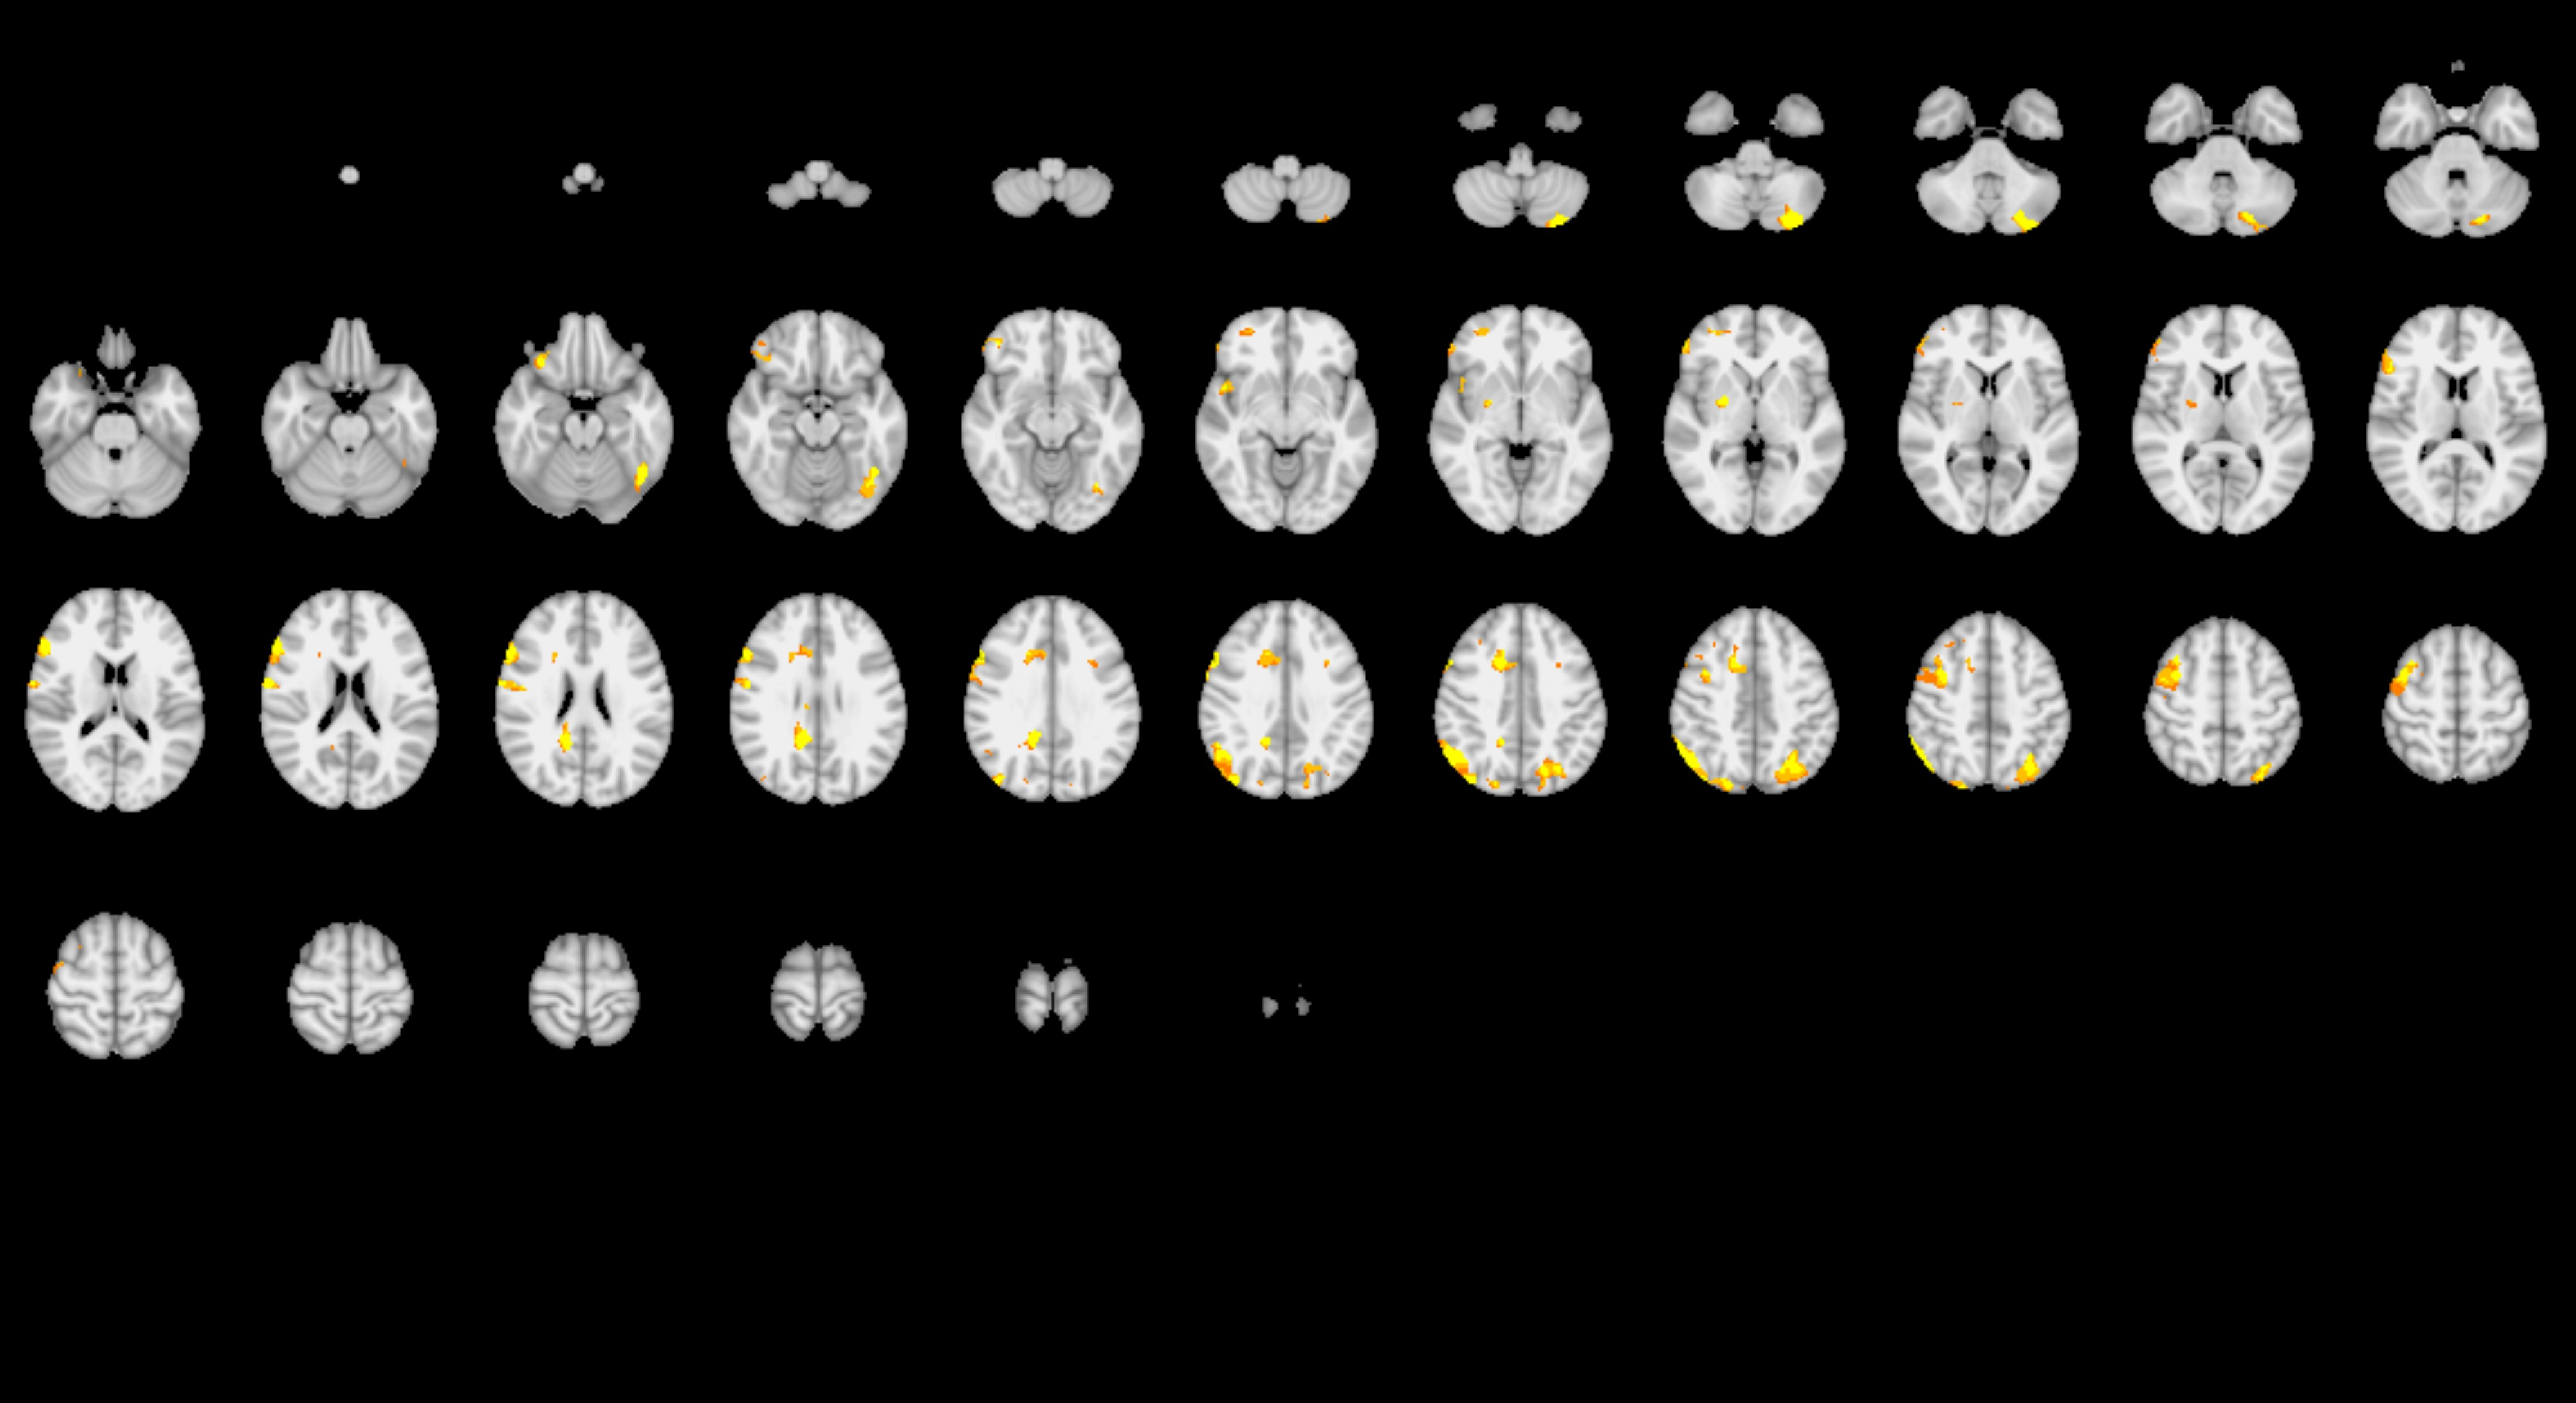 Two sets of imagery from brain analyses